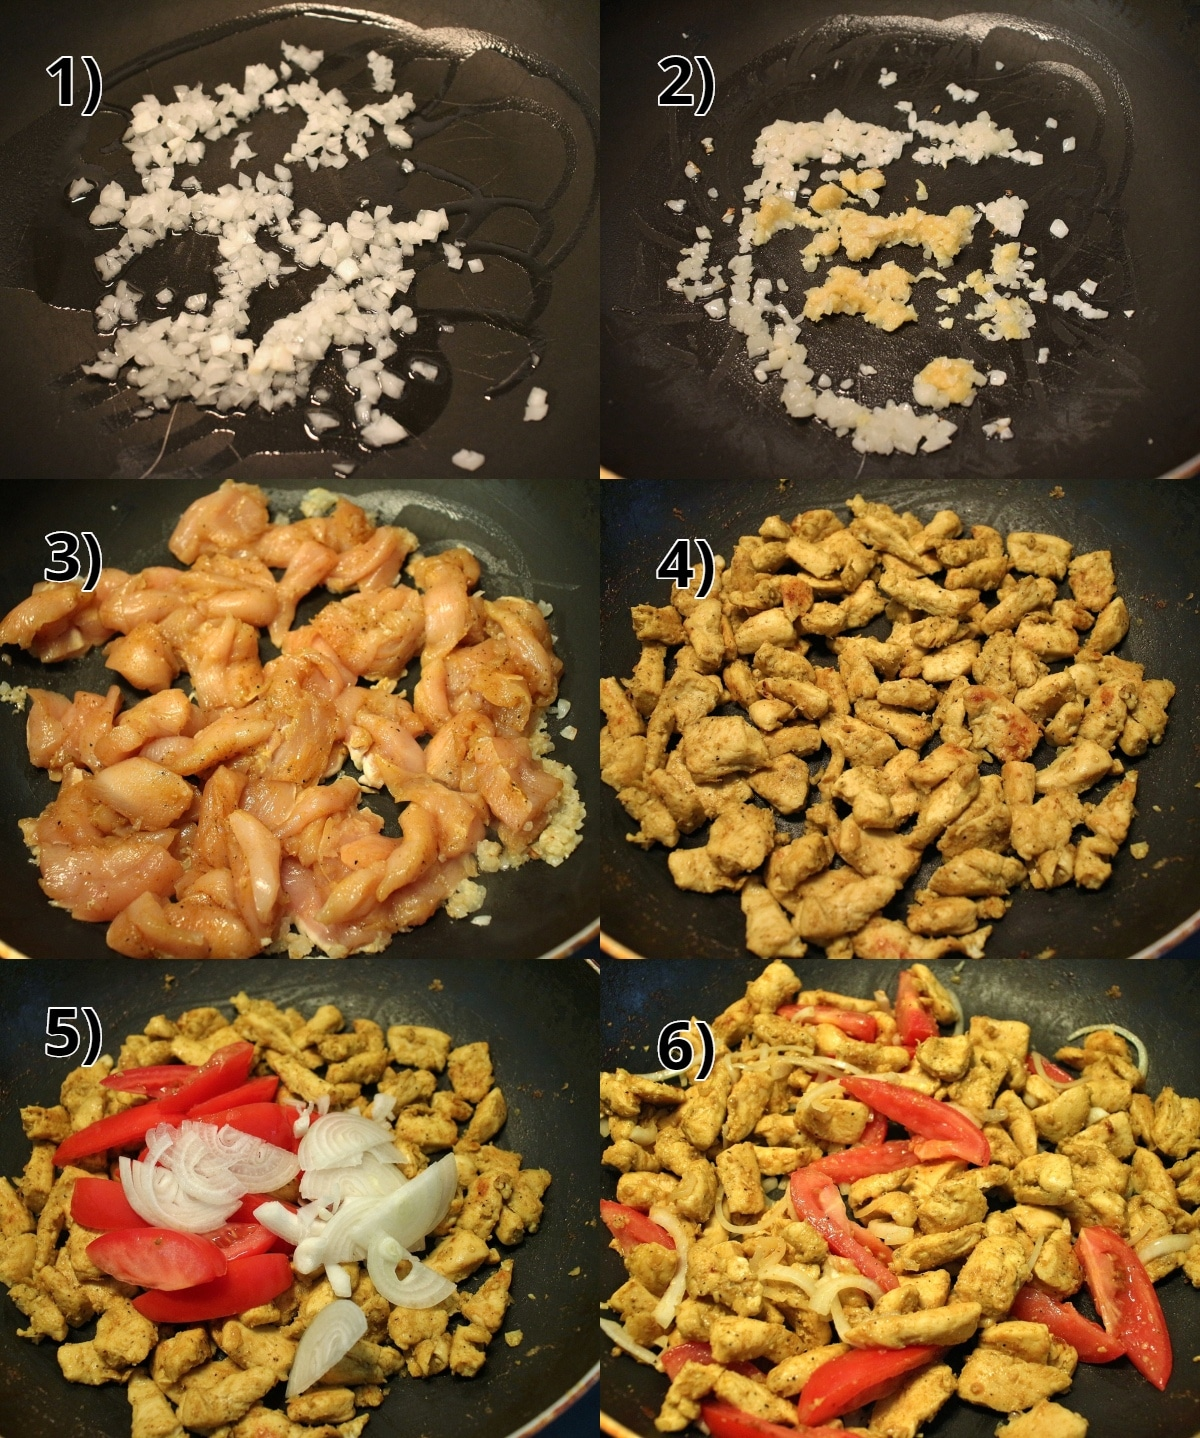 step-by-step photos of how to make Burmese chicken kebat stir-fry